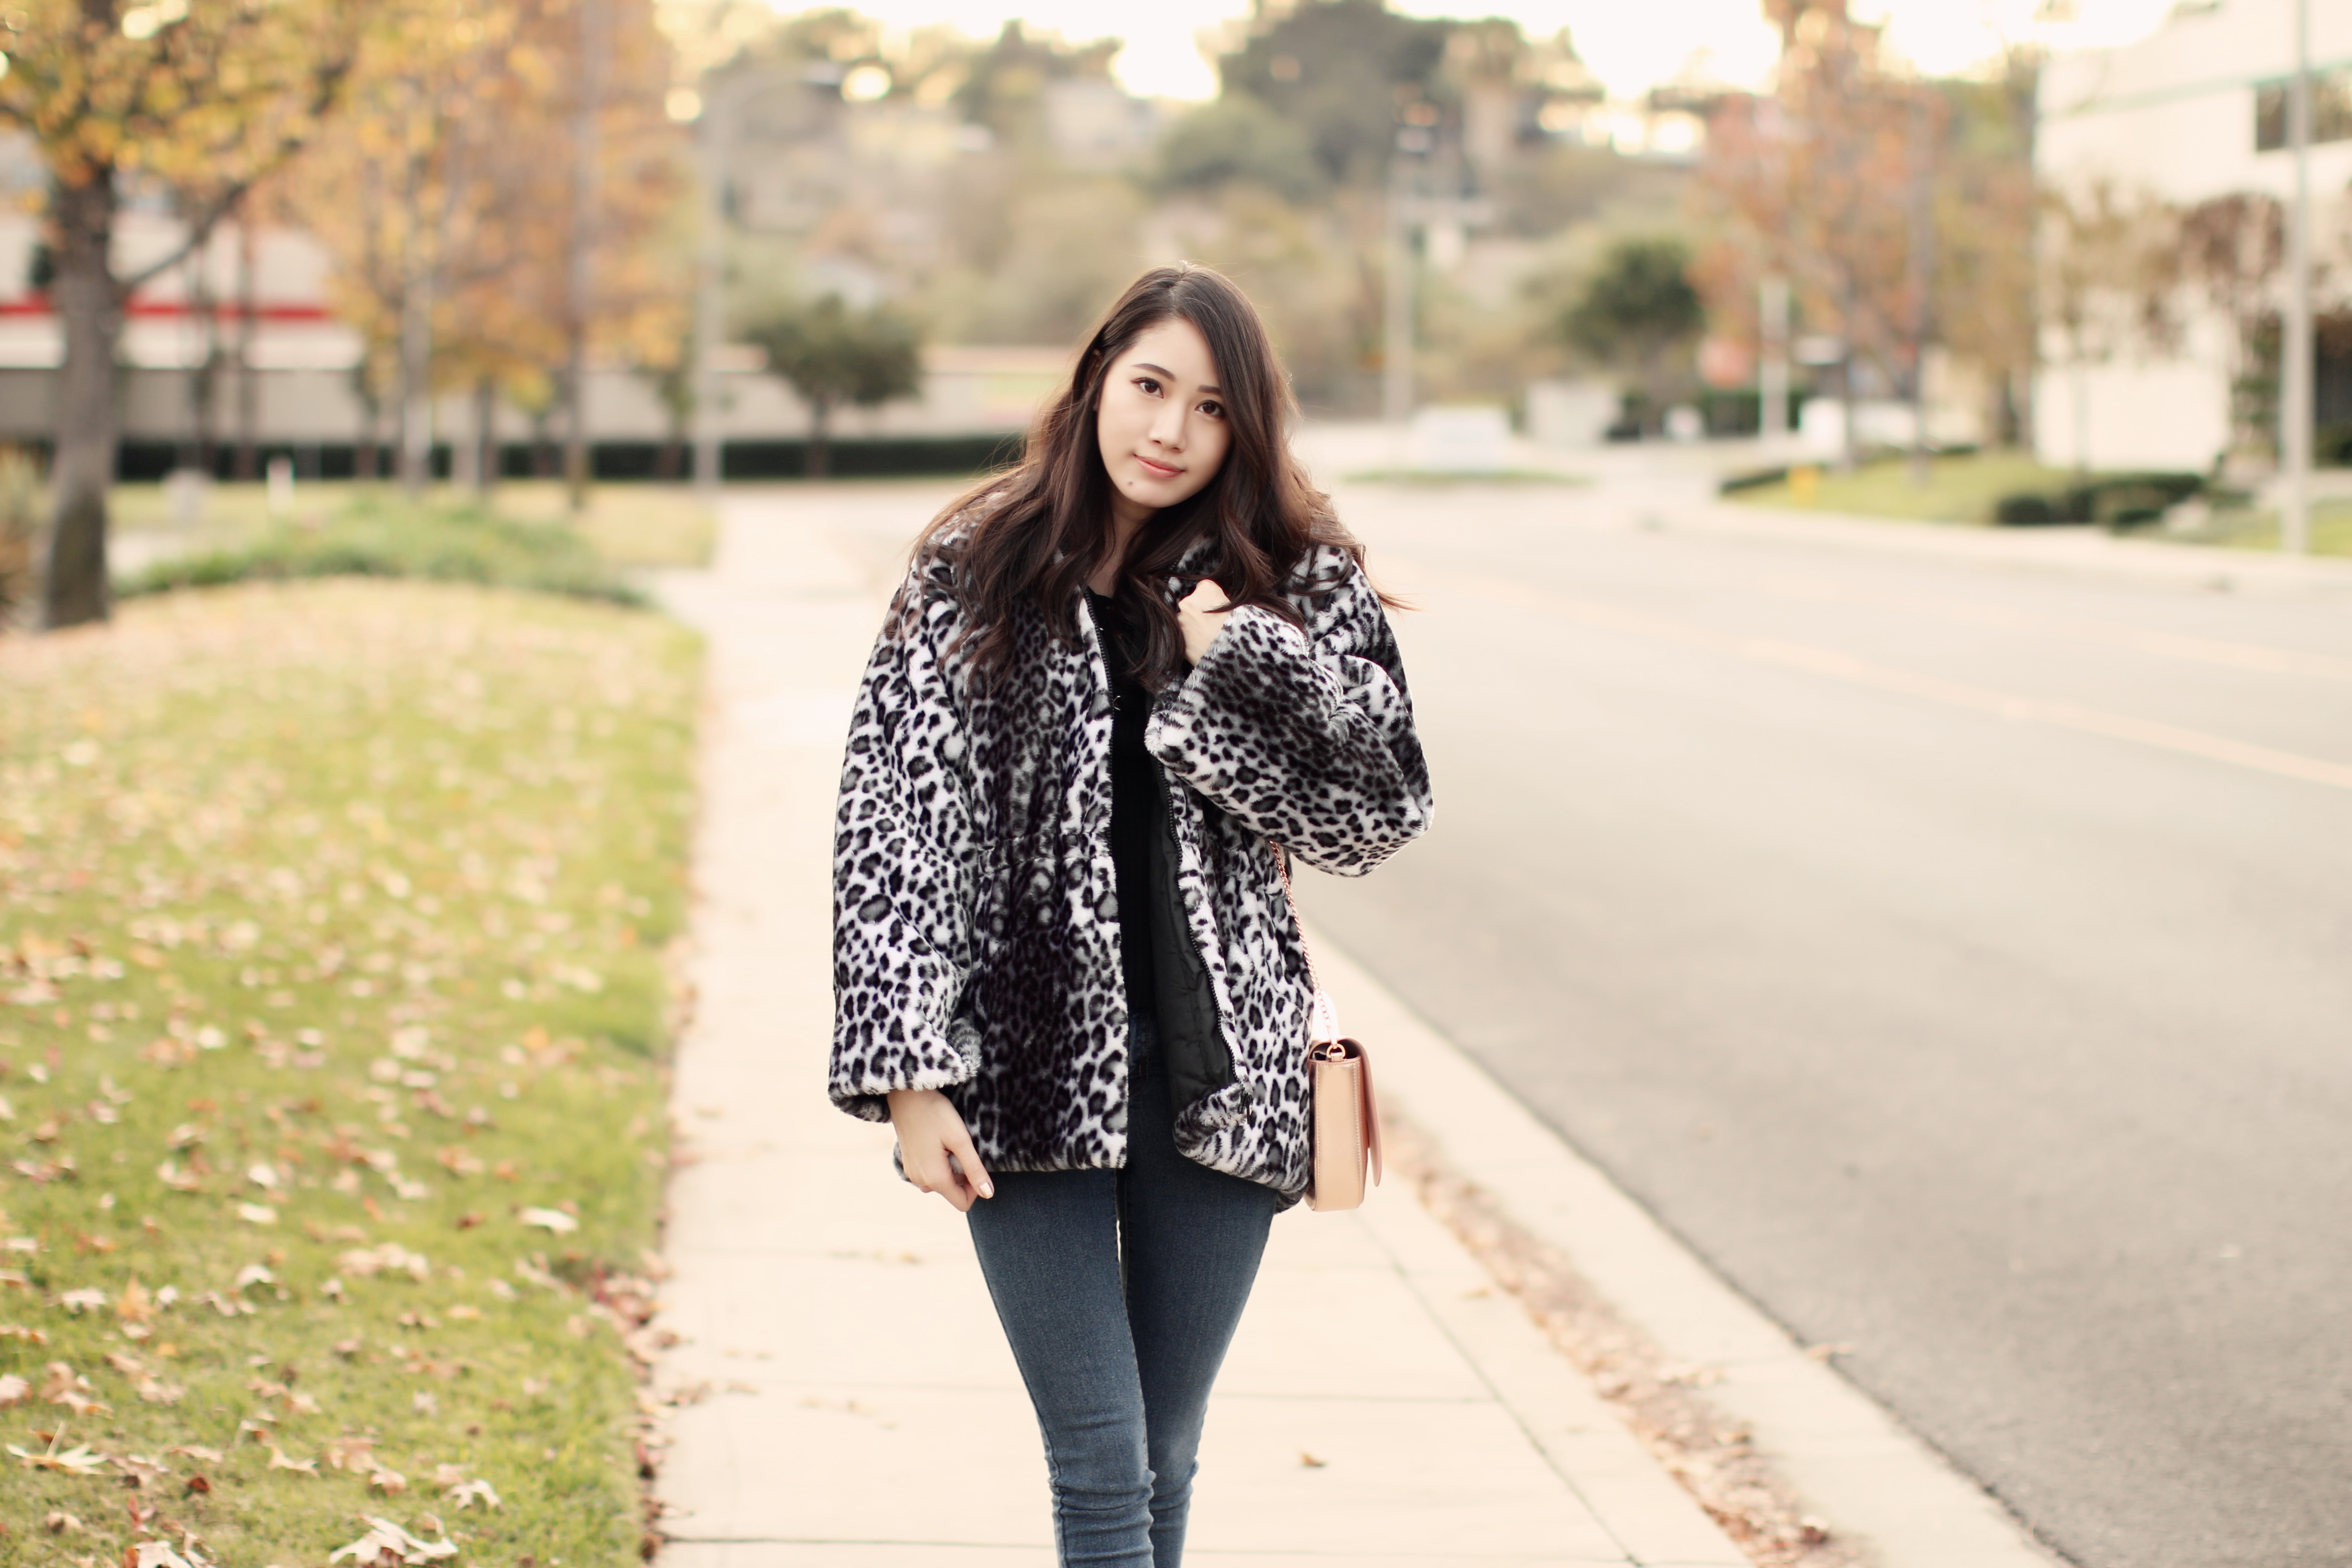 4058-ootd-fashion-style-outfitoftheday-wiwt-streetstyle-furcoat-fauxfur-forever21-f21xme-hollister-hcostylescene-elizabeeetht-clothestoyouuu